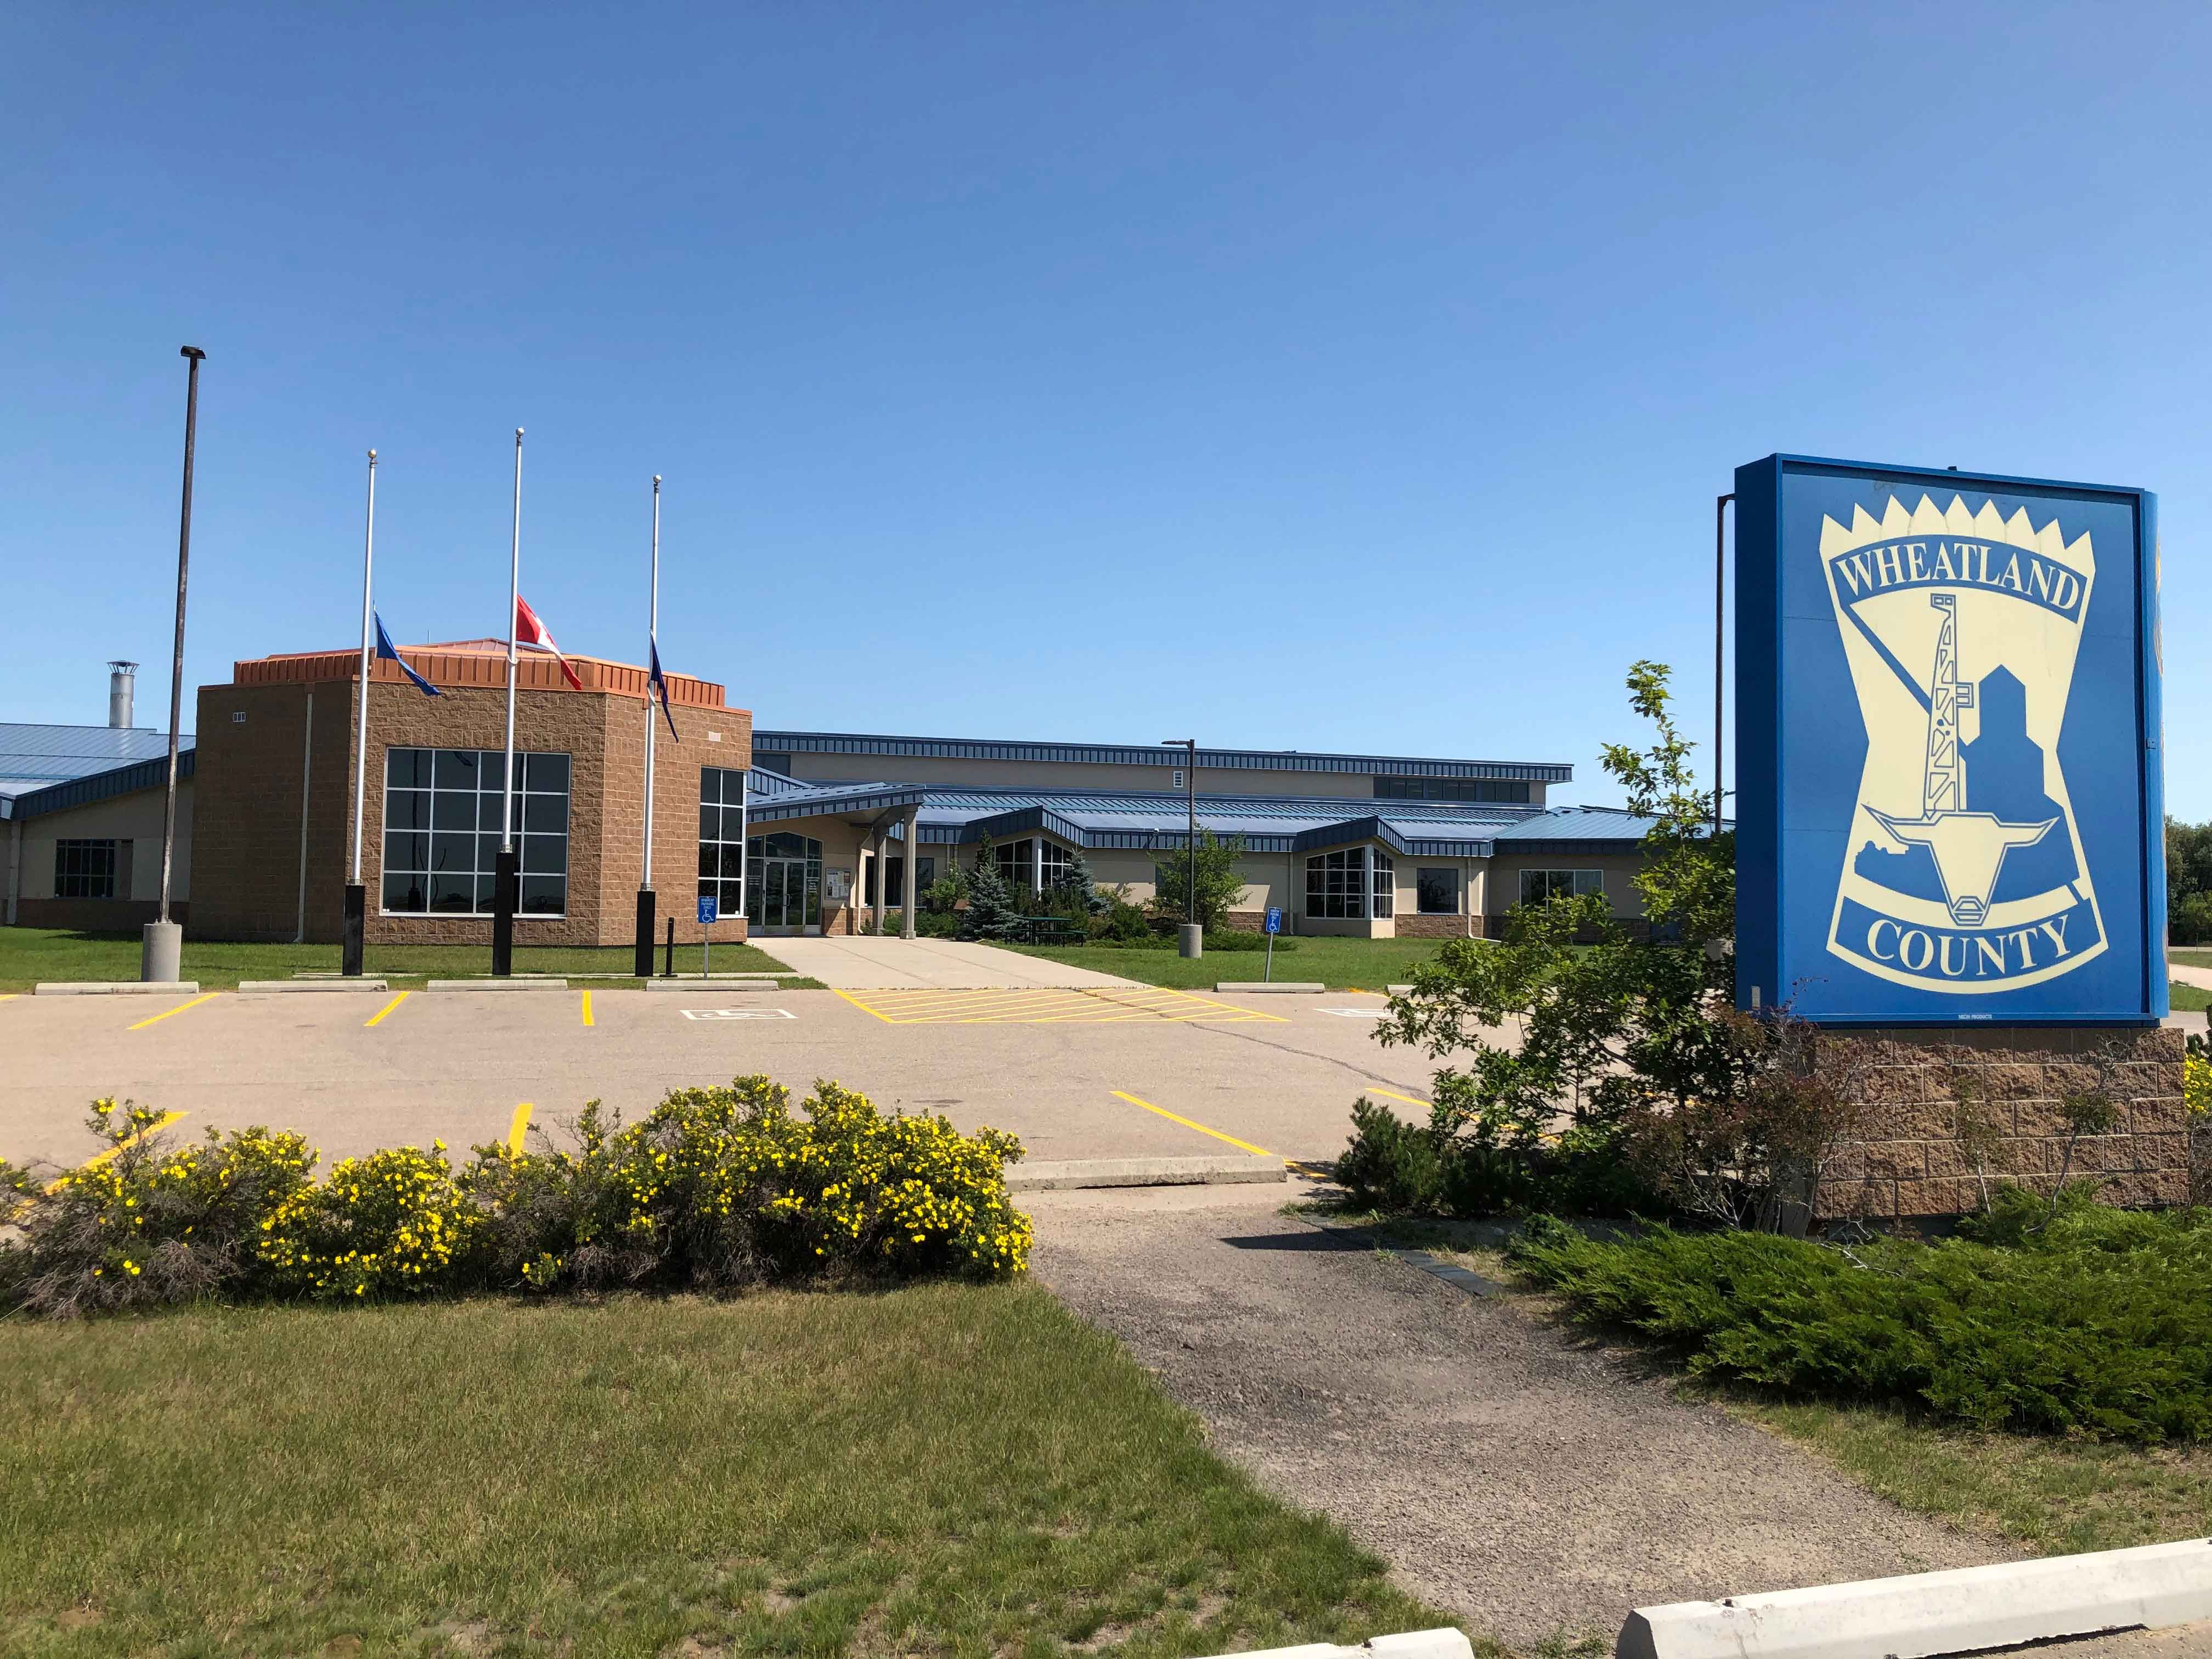 Wheatland County Administration Office